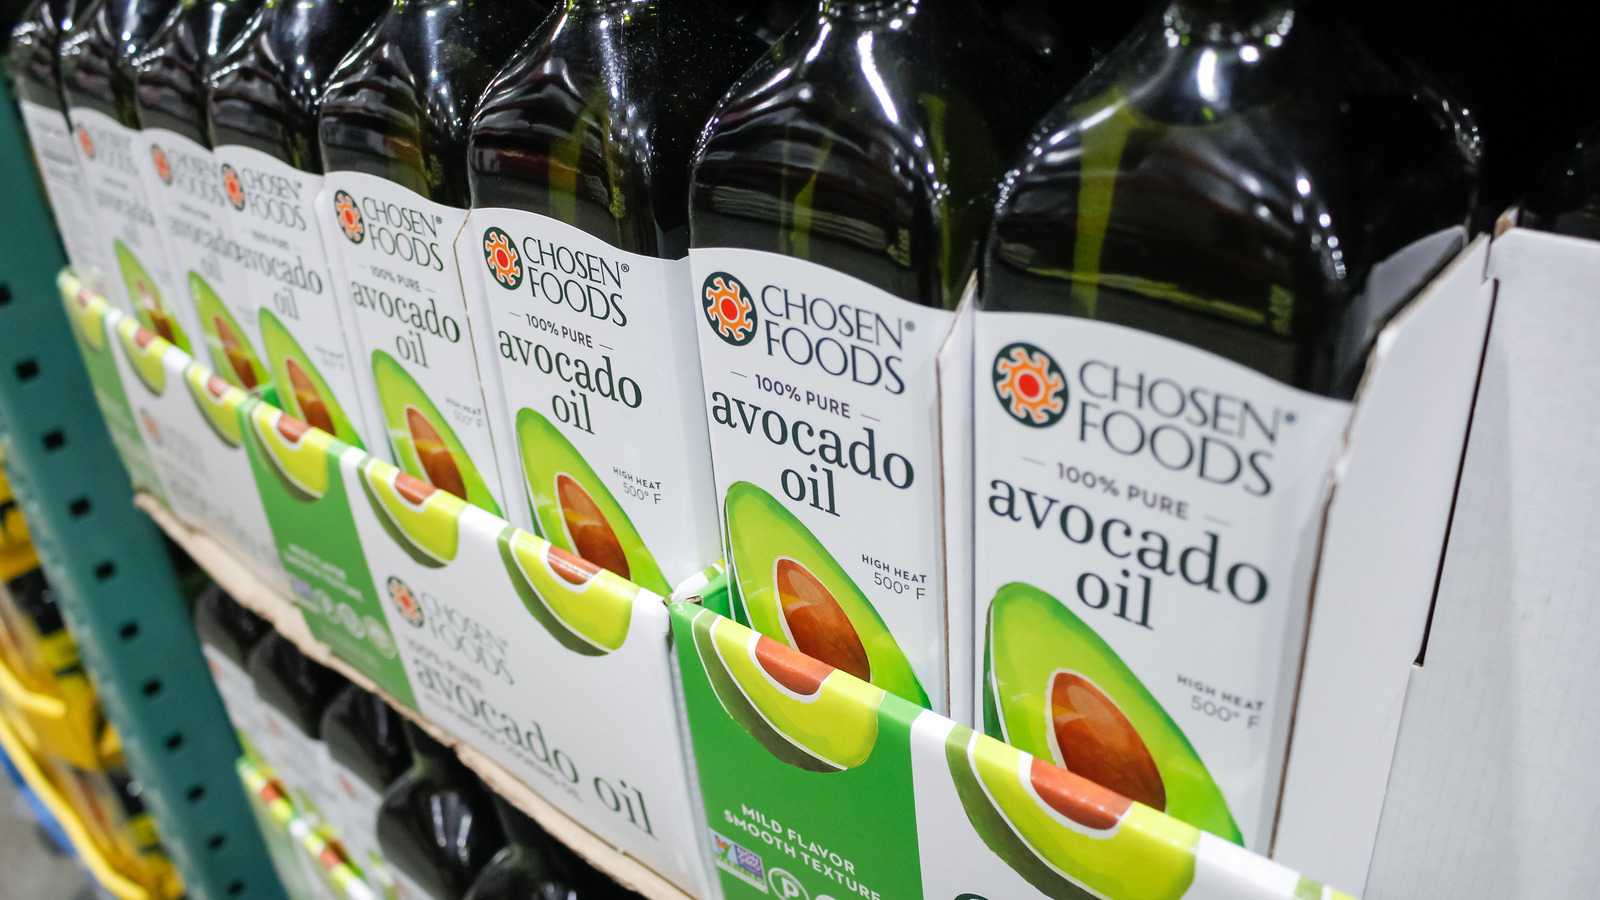 Is Avocado Oil Good For You?